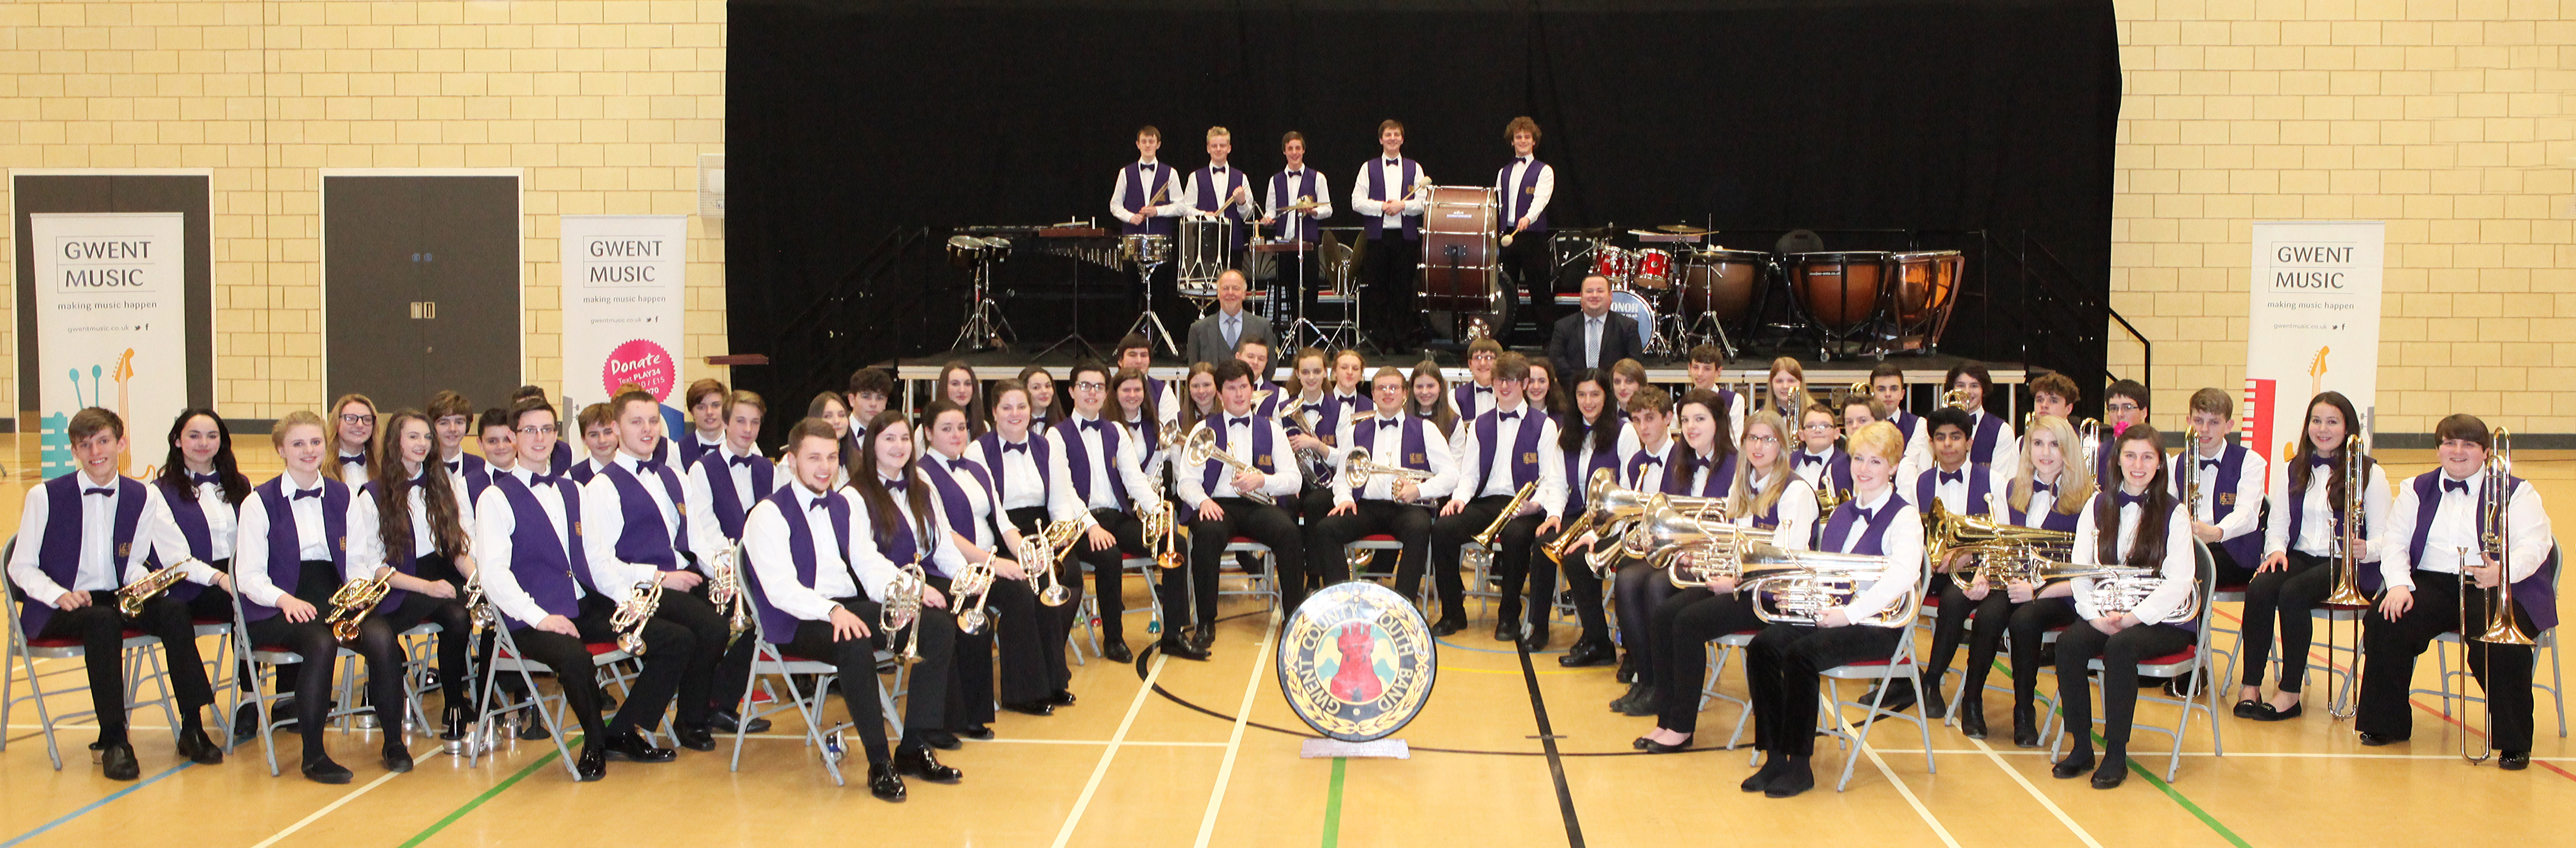 Gwent Youth Brass Band - Gwent MusicGwent Music